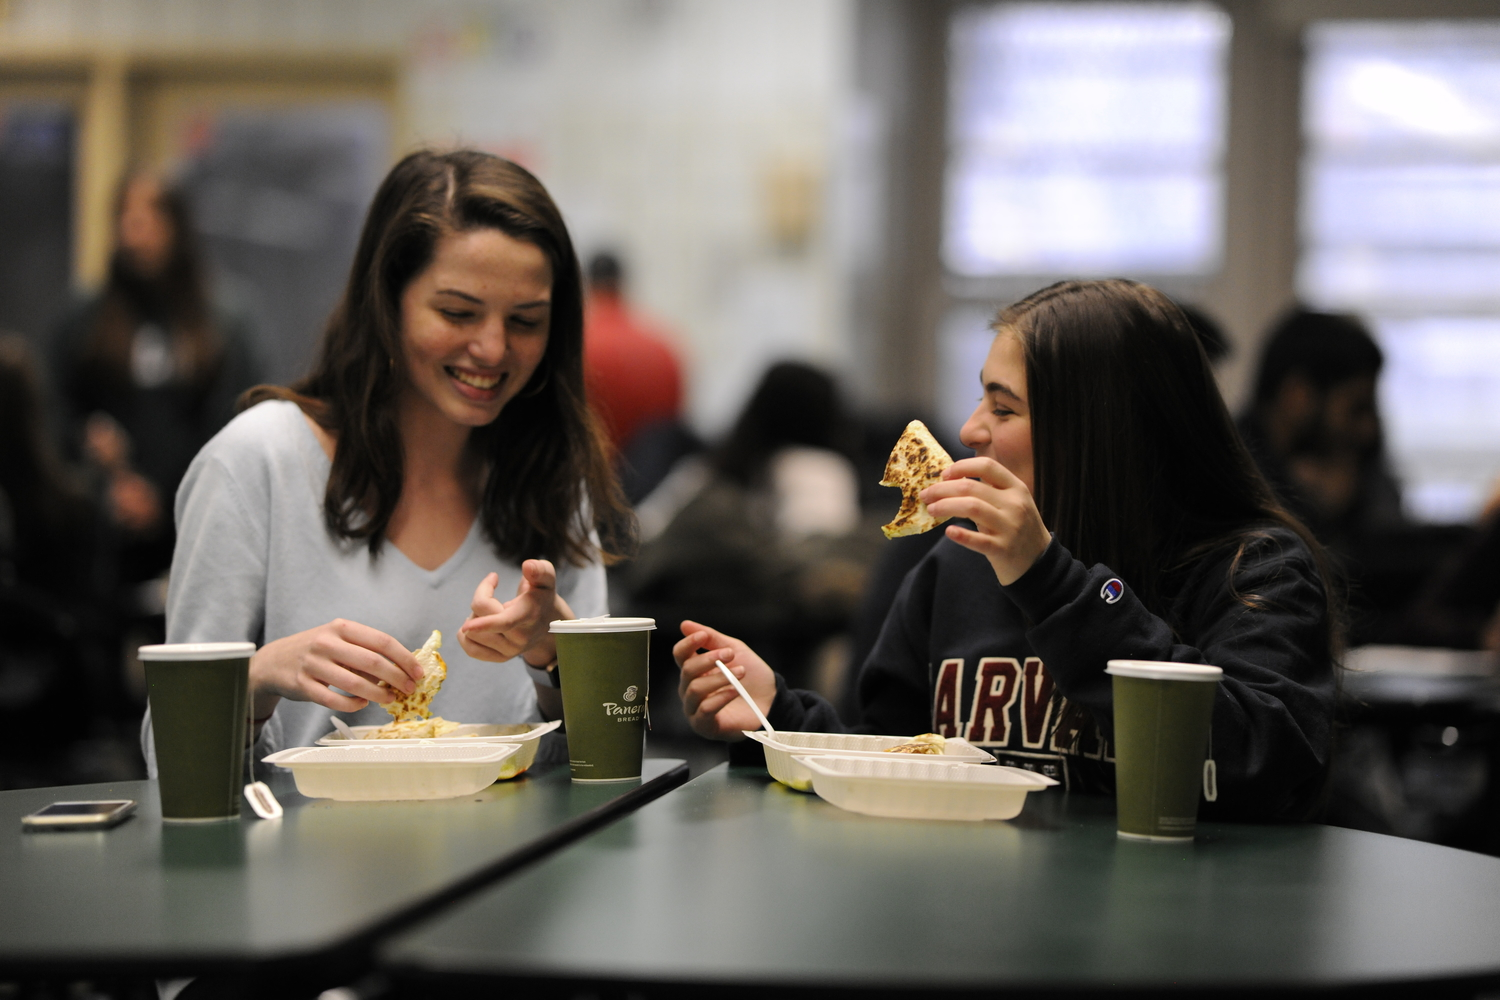 Mary Tyrrell '19 and Helena Macrigiane '19 enjoy their lunch using one of the alternatives to foam containers.